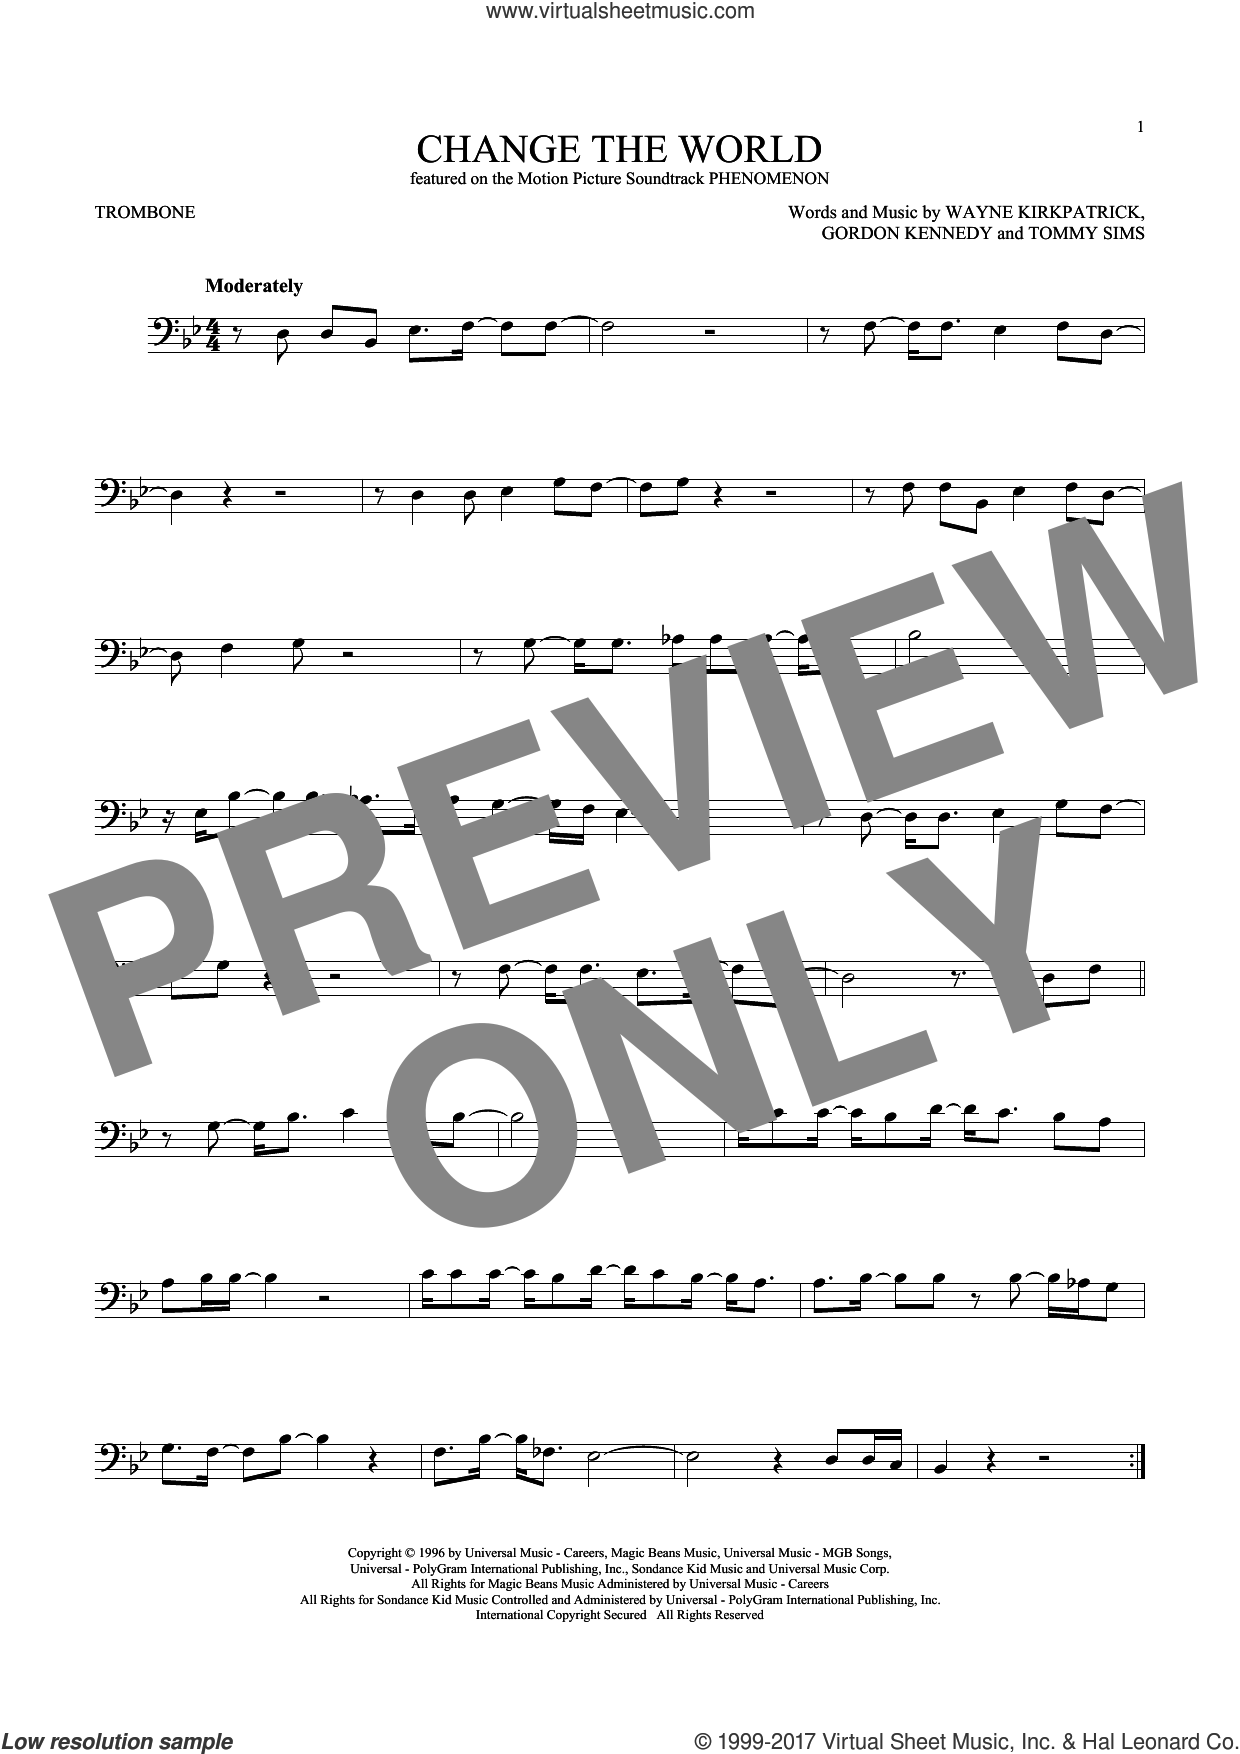 Change The World sheet music for trombone solo by Eric Clapton, Wynonna, Gordon Kennedy, Tommy Sims and Wayne Kirkpatrick, intermediate skill level